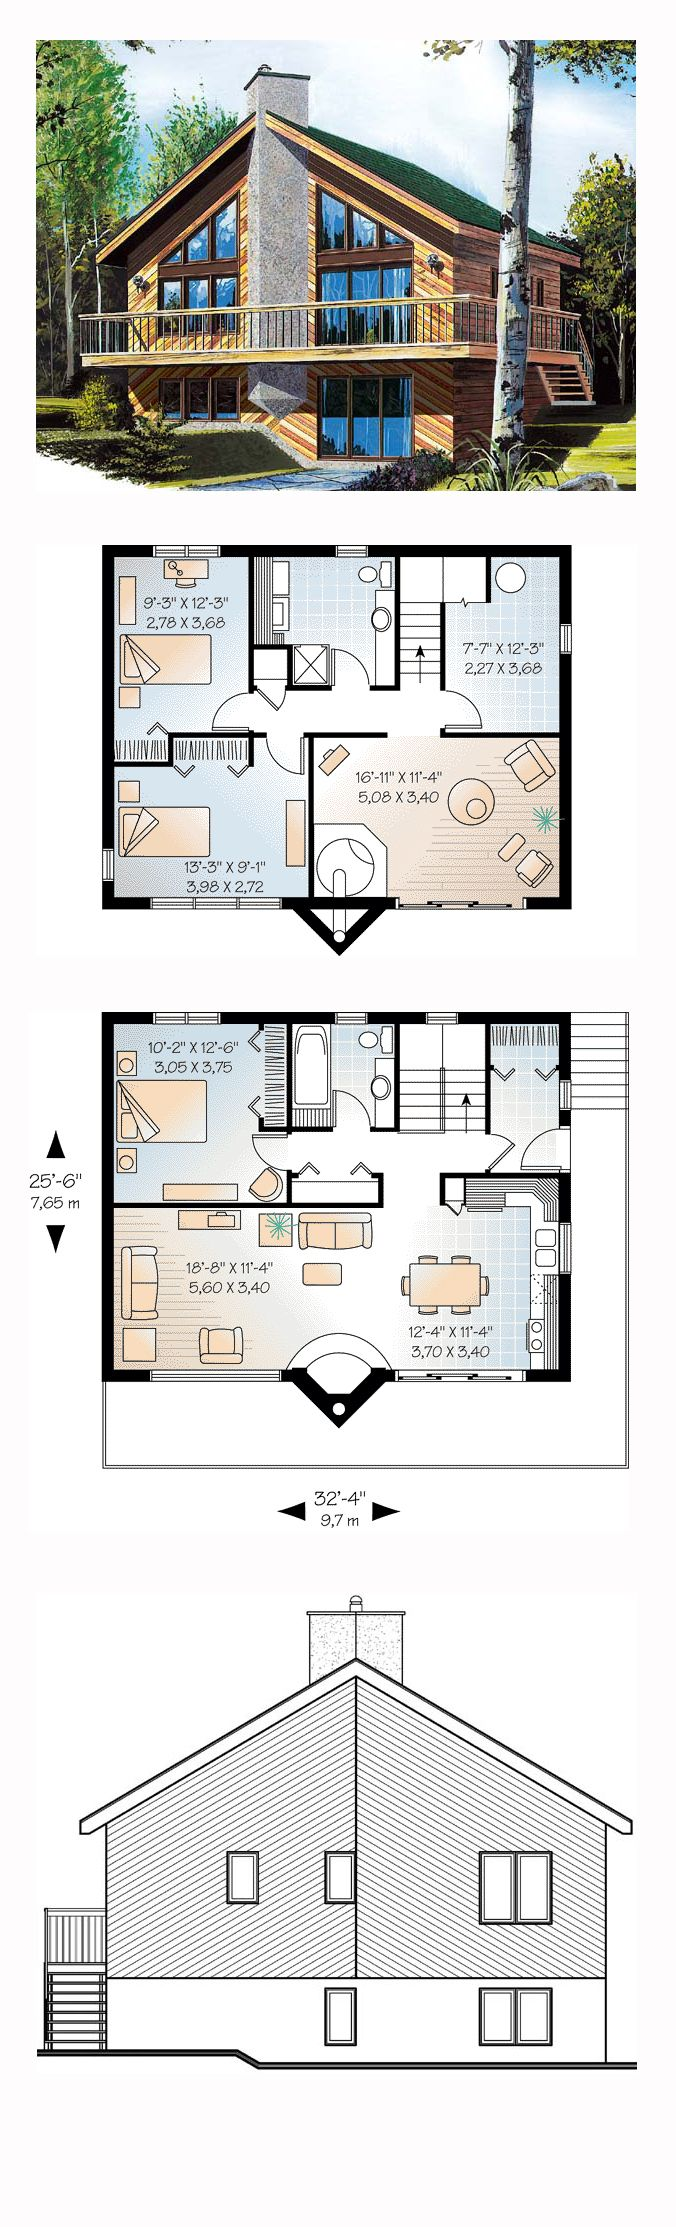 frame house plan total living area sq ft also best floor plans images in future rh pinterest